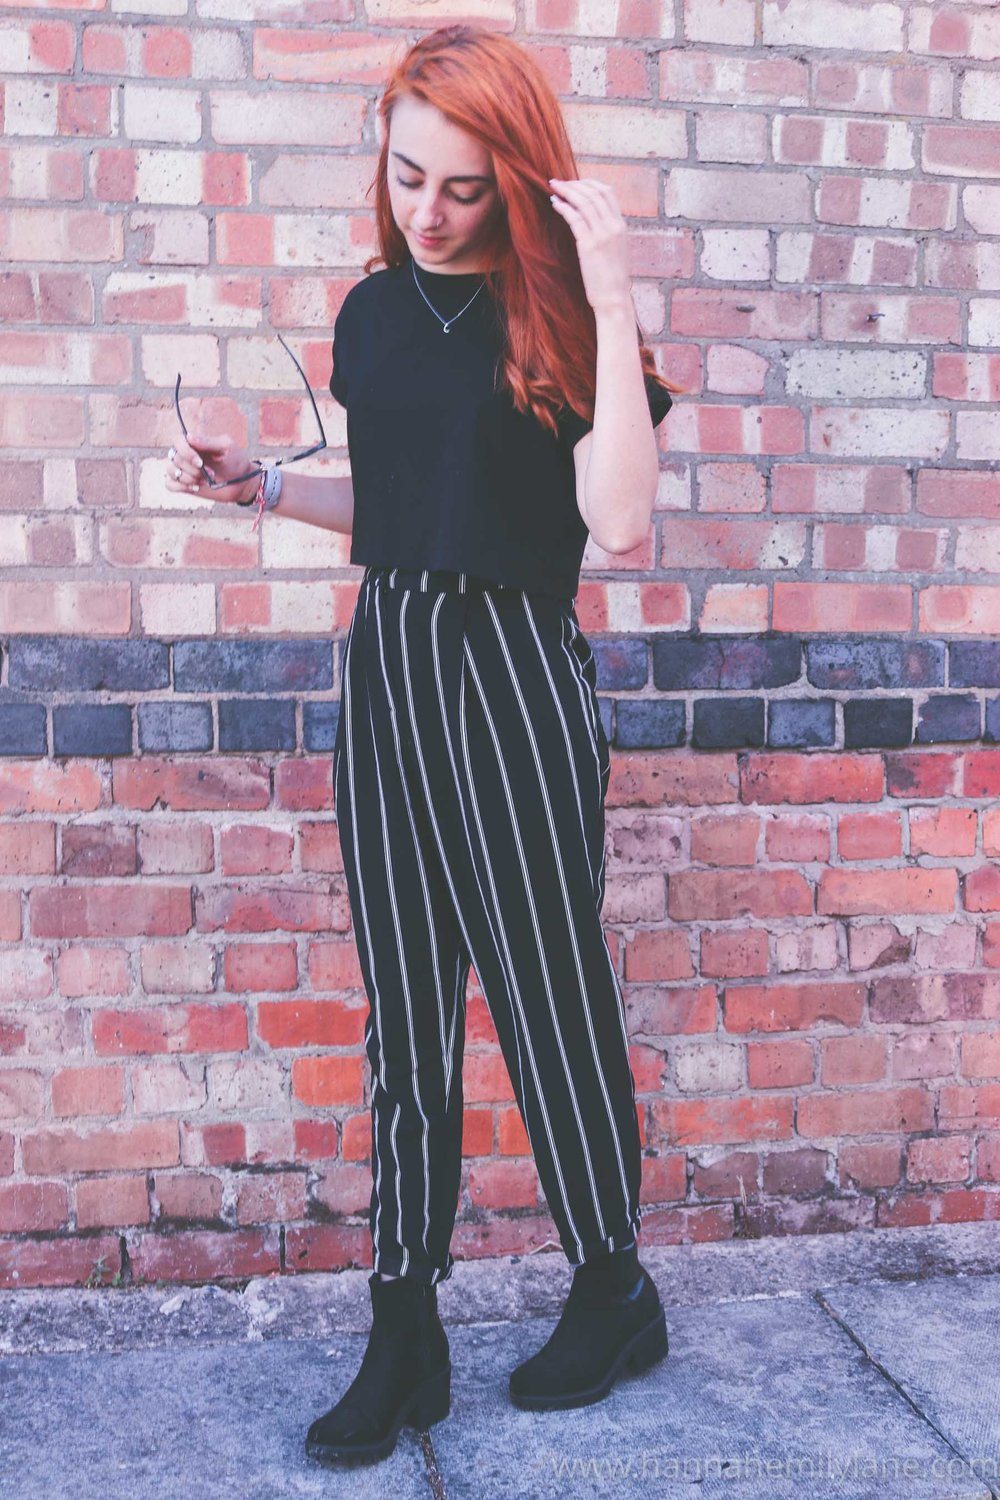 Shop this outfit: - Trousers: H&MTop: ASOSBoots: Old (Similar)Necklace: ASOS